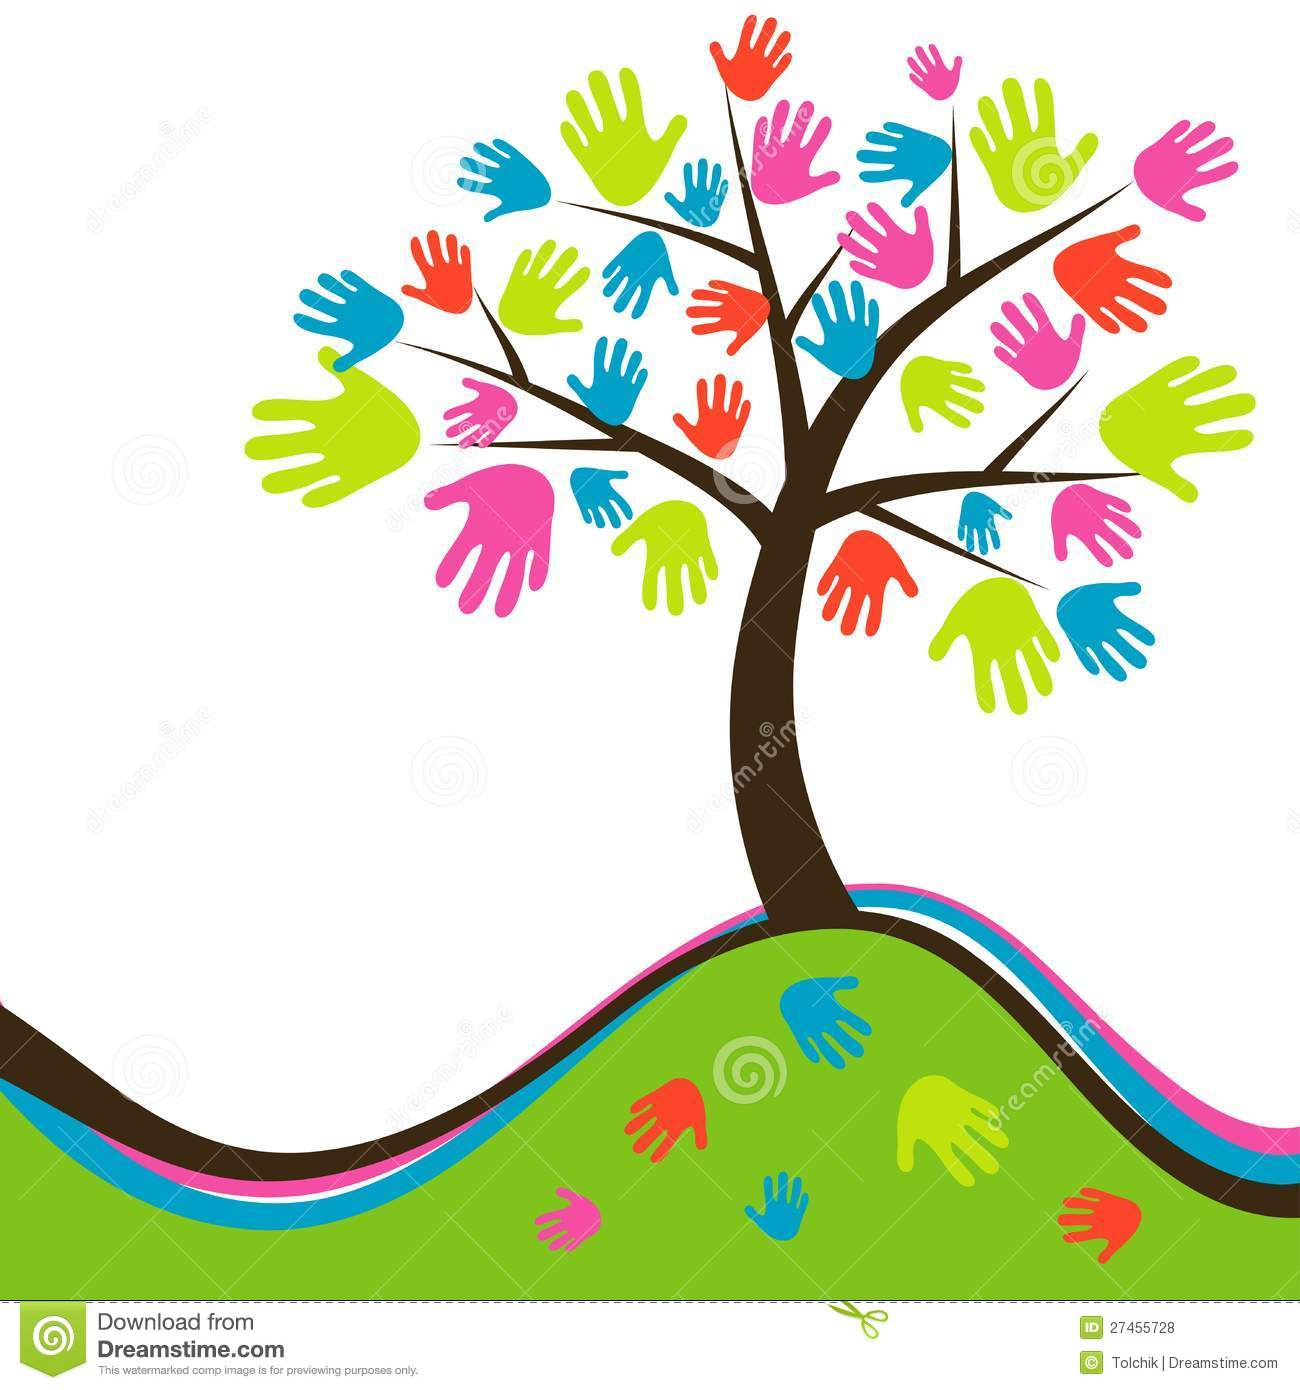 More similar stock images of ` Decorative abstract hand tree, vector `